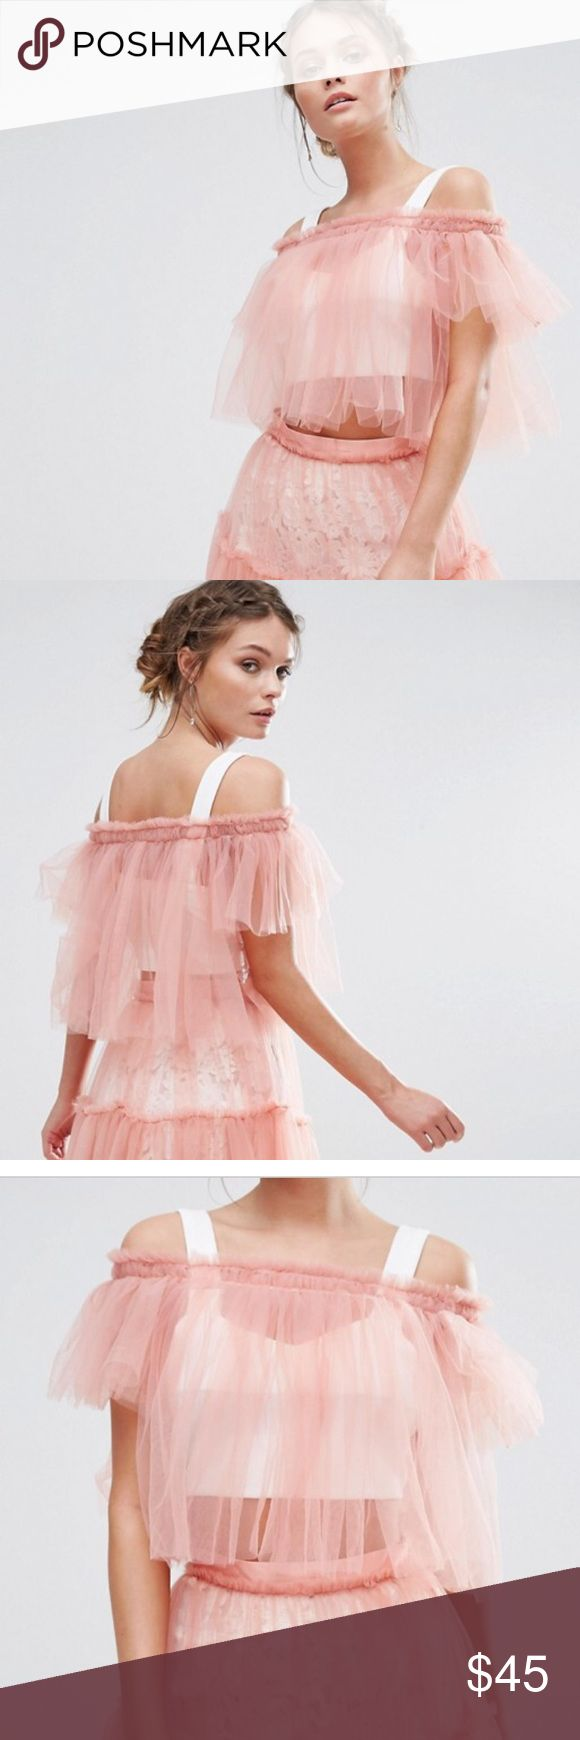 """New True Decadence Bardot Tulle Crop Top Never worn.  True Decadence Bardot Tulle Crop Top Lightweight tulle Frill-seam detail Hand wash 100% Nylon Model shown wears a UK 8/EU 36/US 4 and is 170cm/5'7"""" tall Undergarment not included Size US 8 True Decadence Tops"""